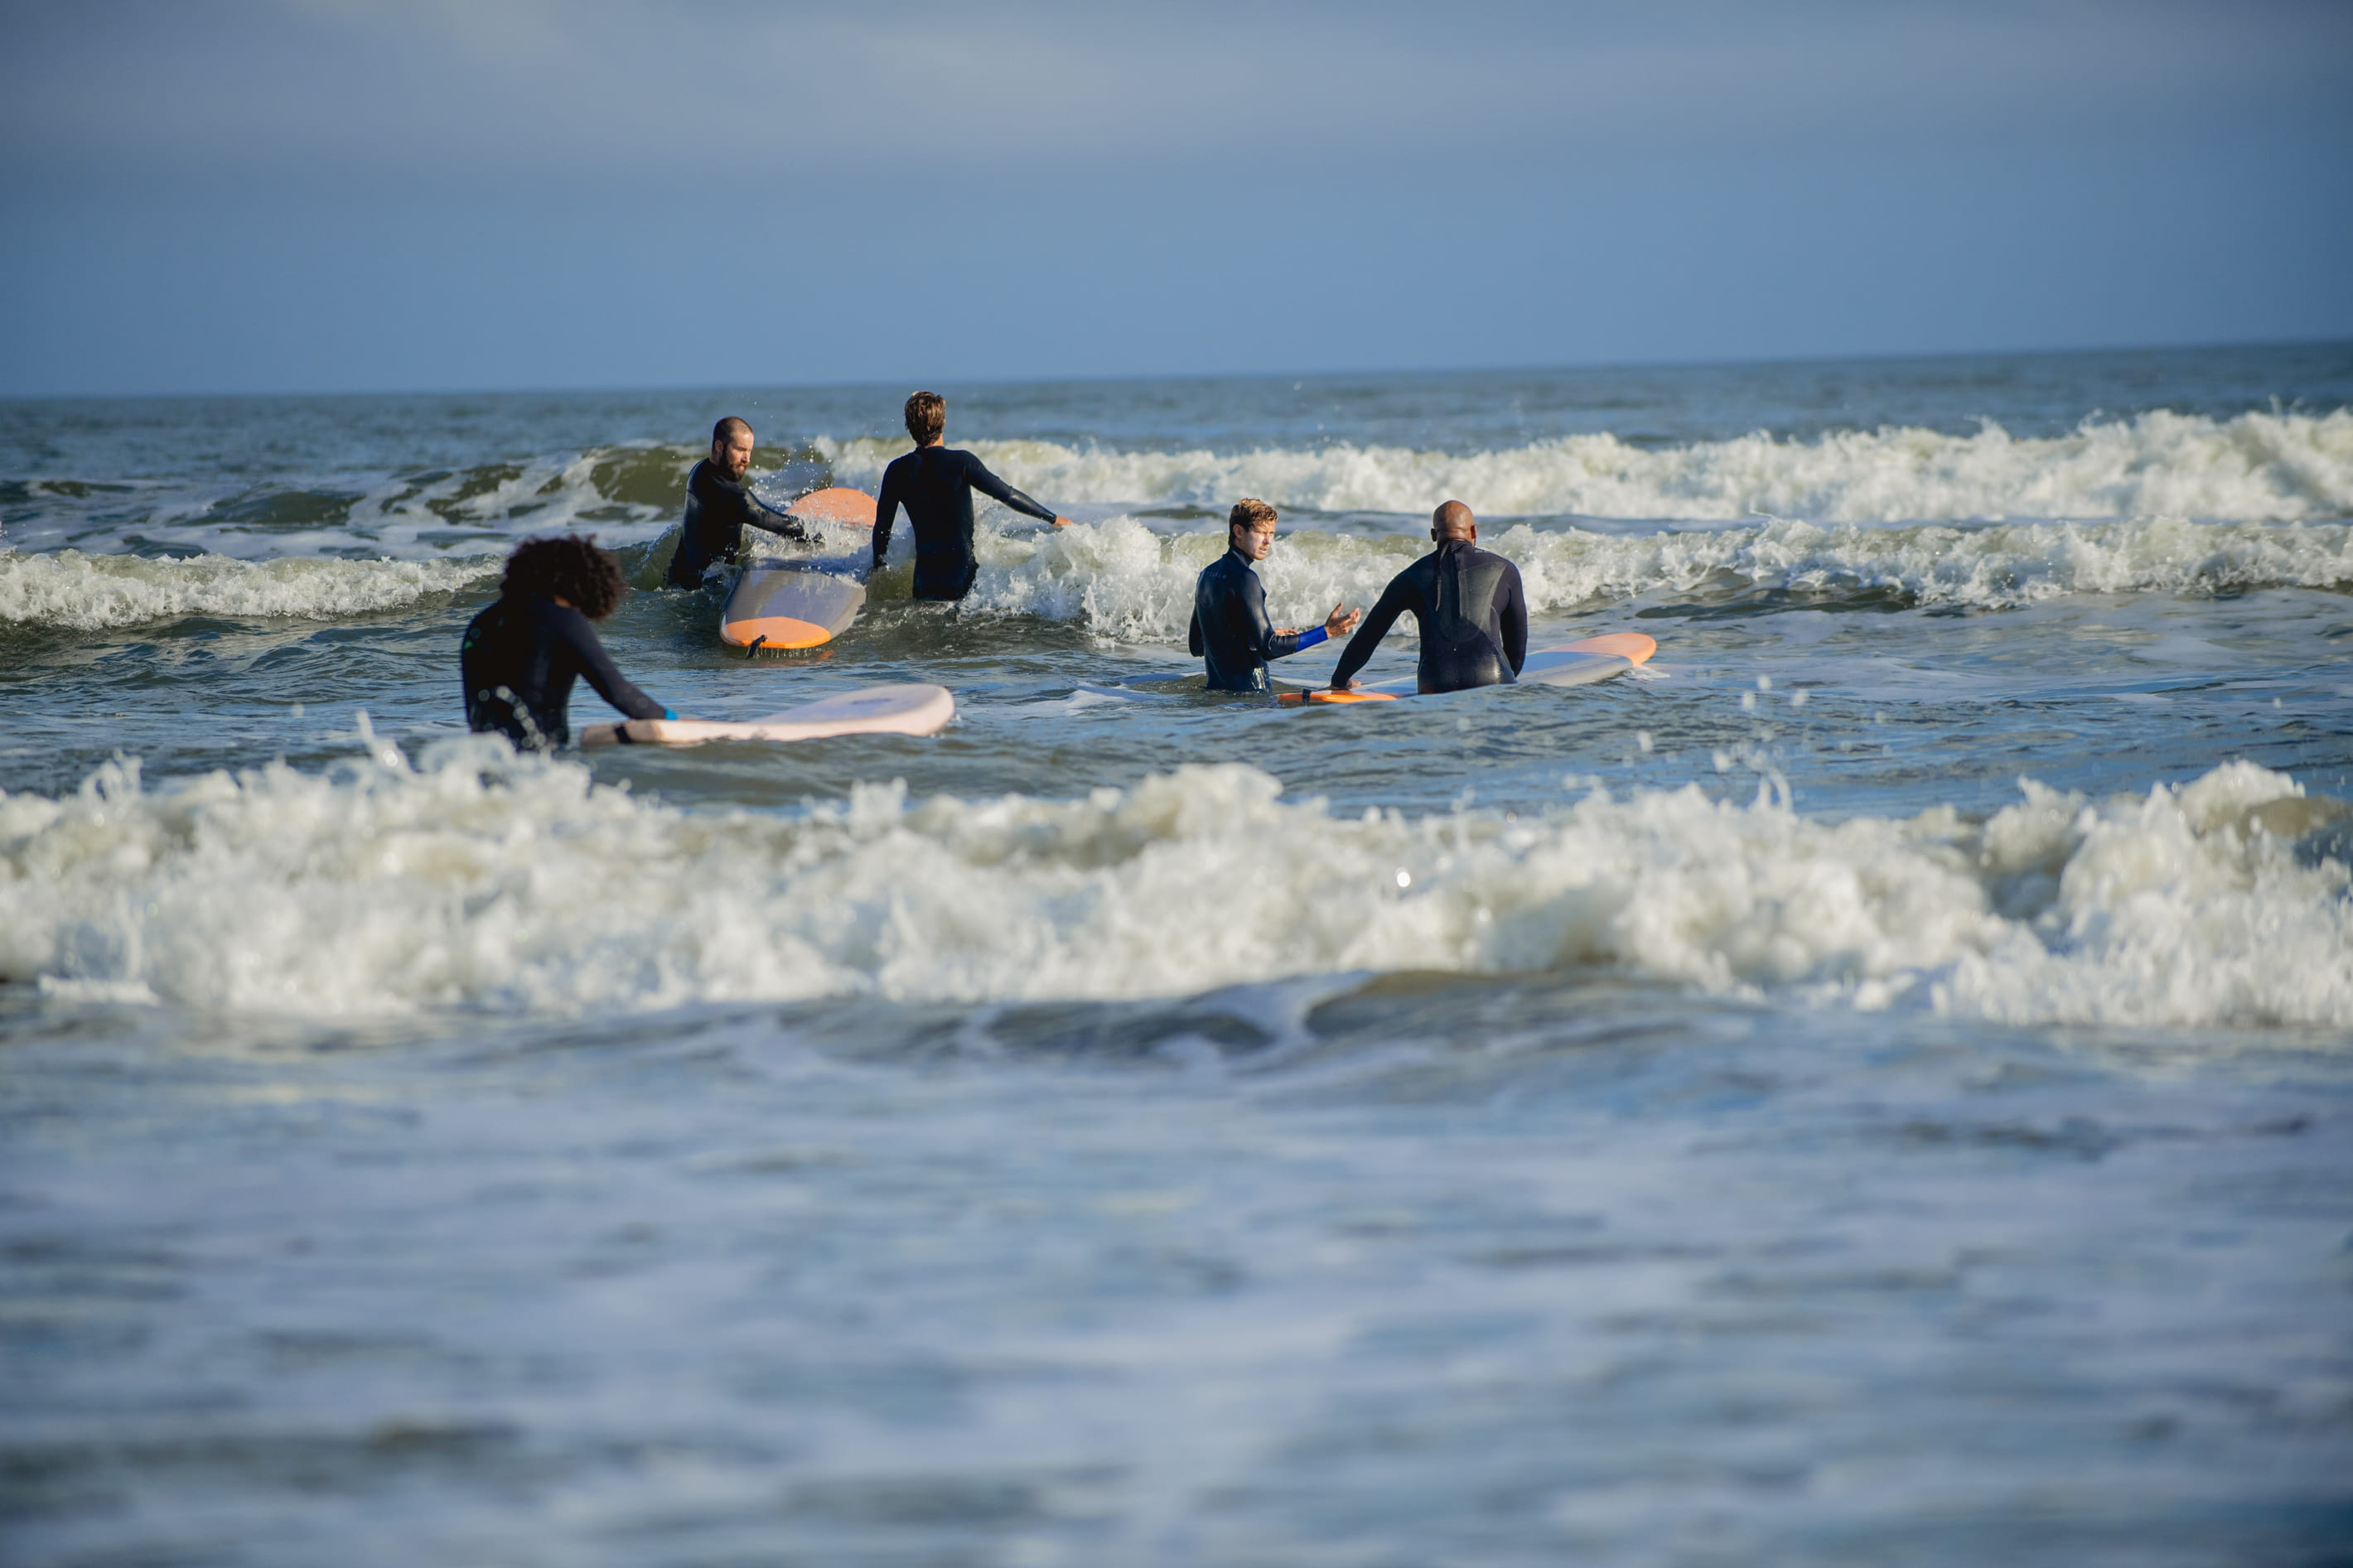 Veterans learns the art of surfing with help from Warrior Surf Foundation instructors. Photo courtesy of Warrior Surf.